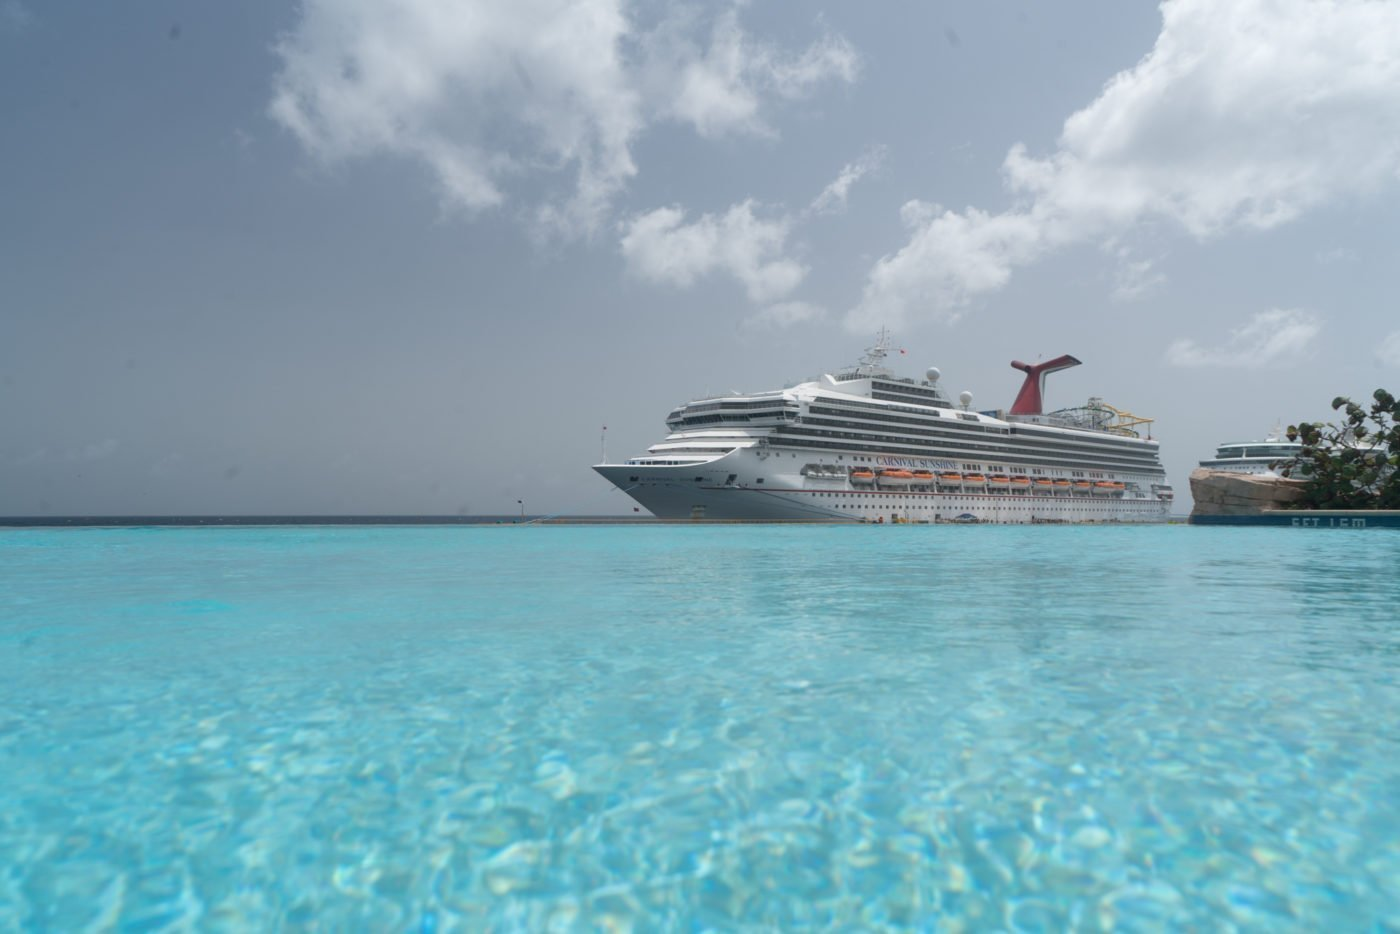 Carnival cruise ship seen from the infinity pool at Renaissance Resort, Curaçao